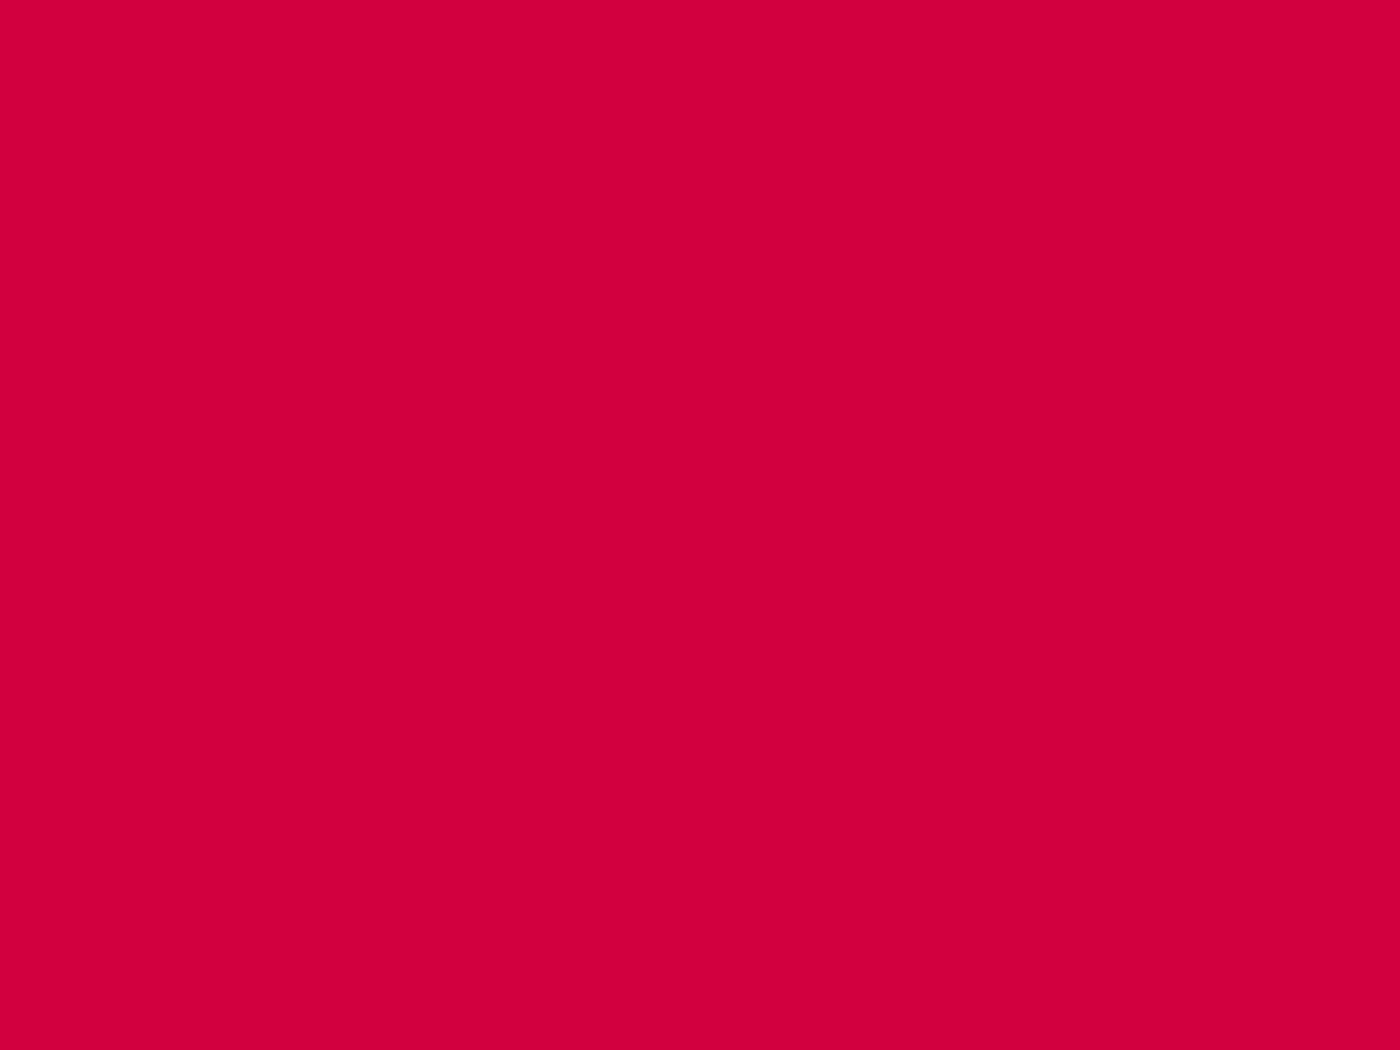 1400x1050 Utah Crimson Solid Color Background